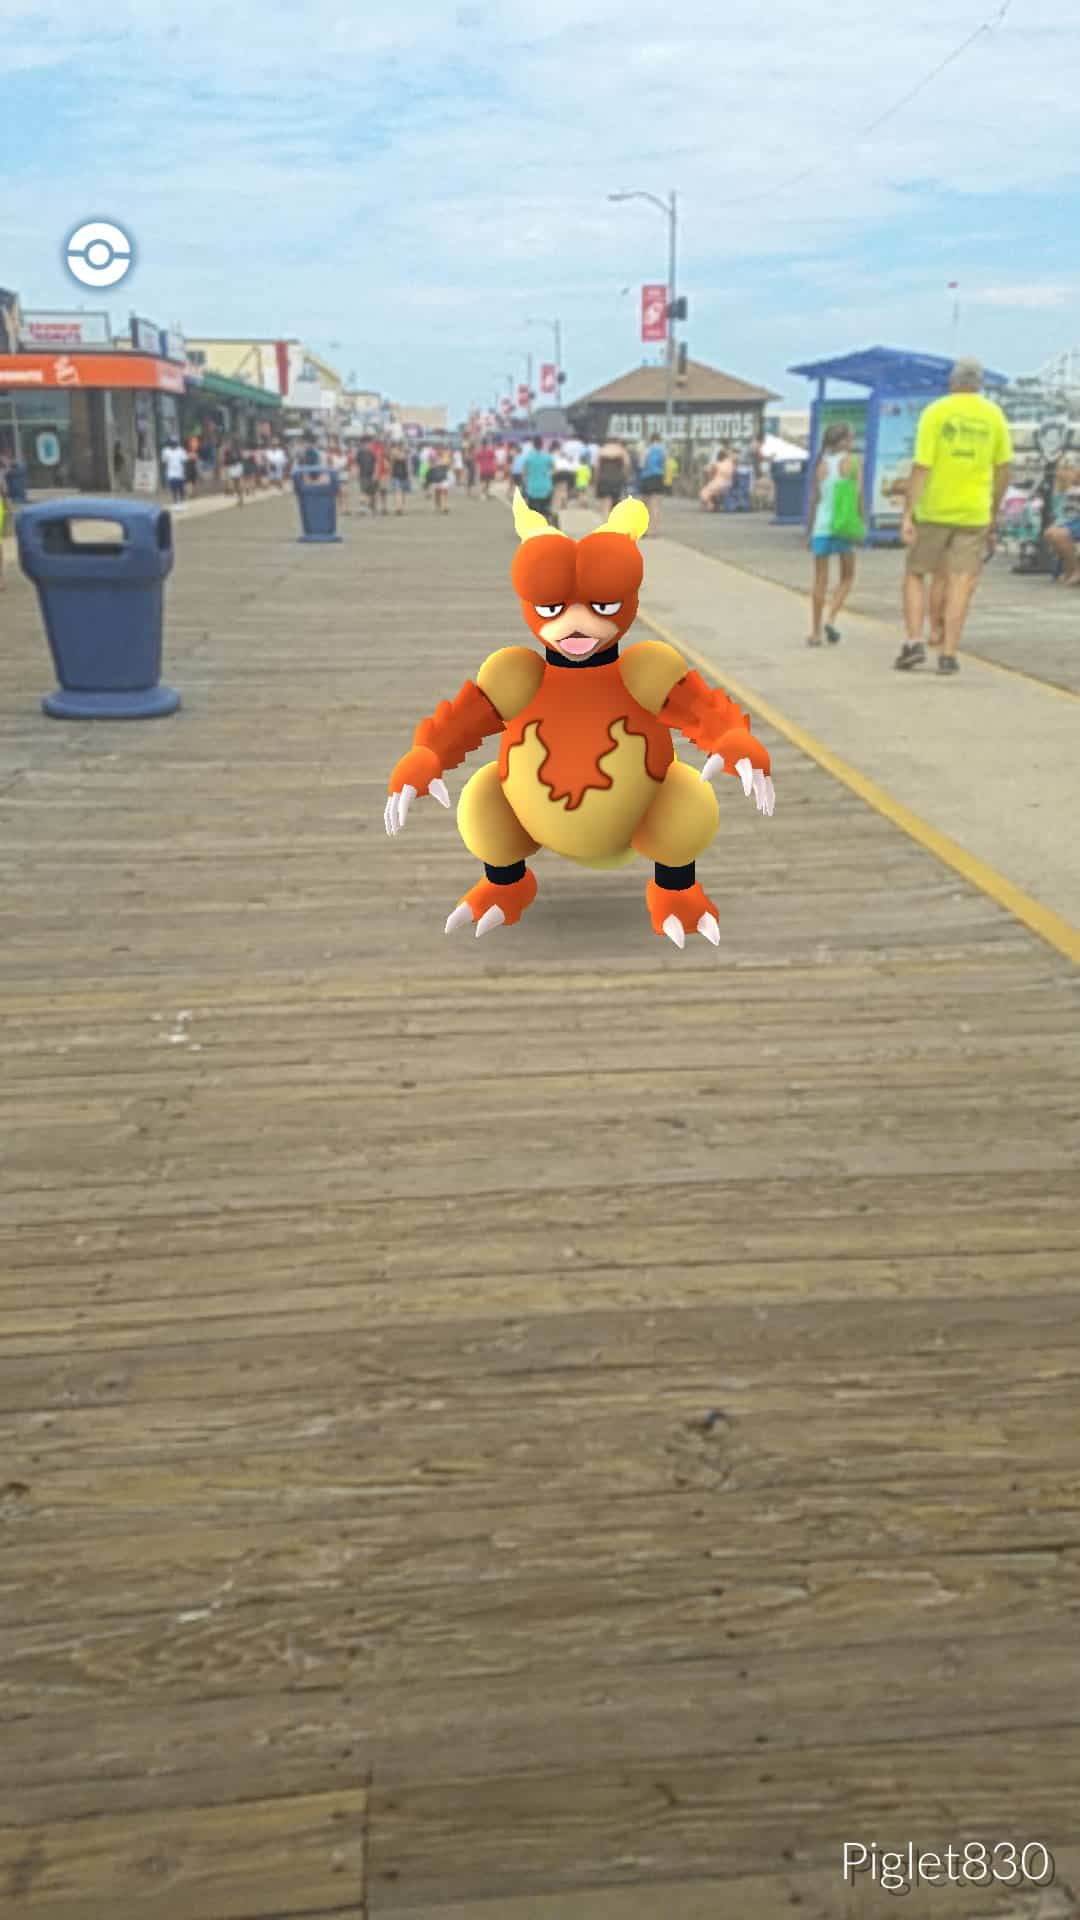 A screenshot of a Pokémon GO character standing on a boardwalk.